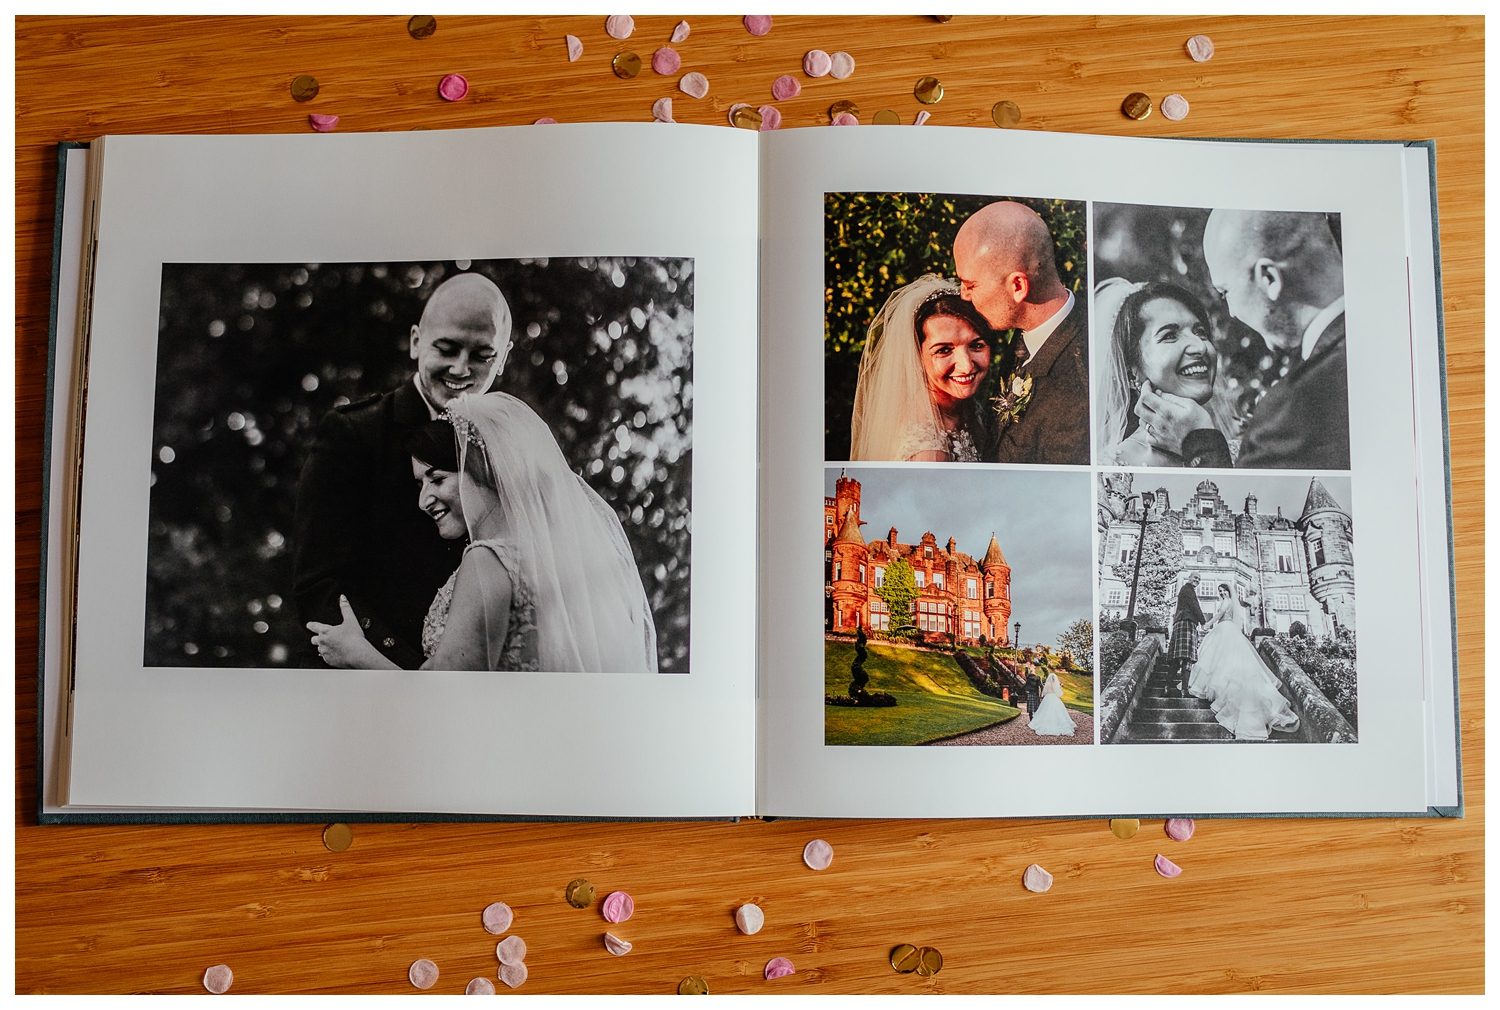 lay flat coffee table wedding album photo book example by Fotomaki Photography